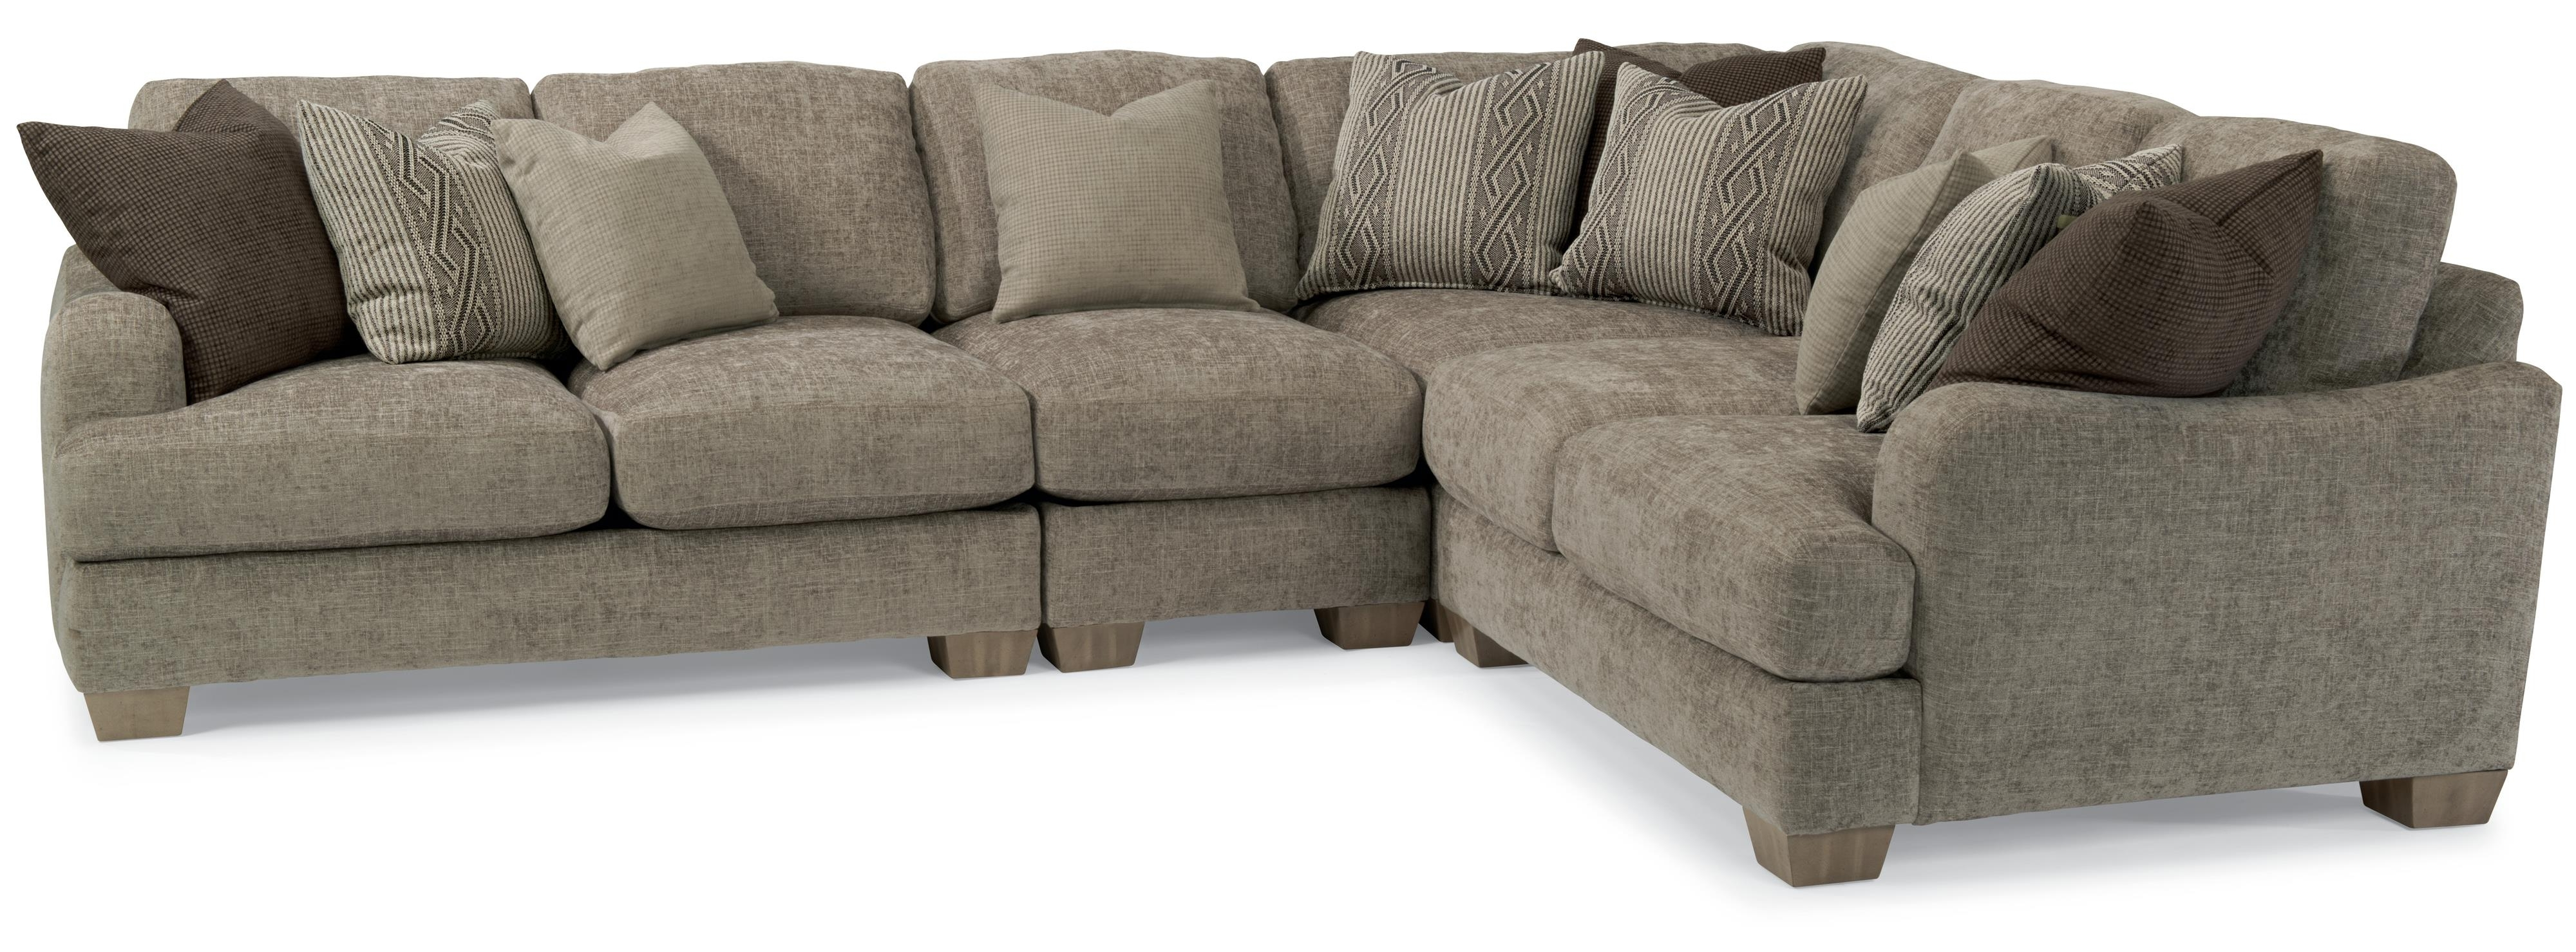 Vanessa Sectional Sofa With Loose Pillow Backflexsteel With Fashionable Kansas City Sectional Sofas (View 7 of 15)